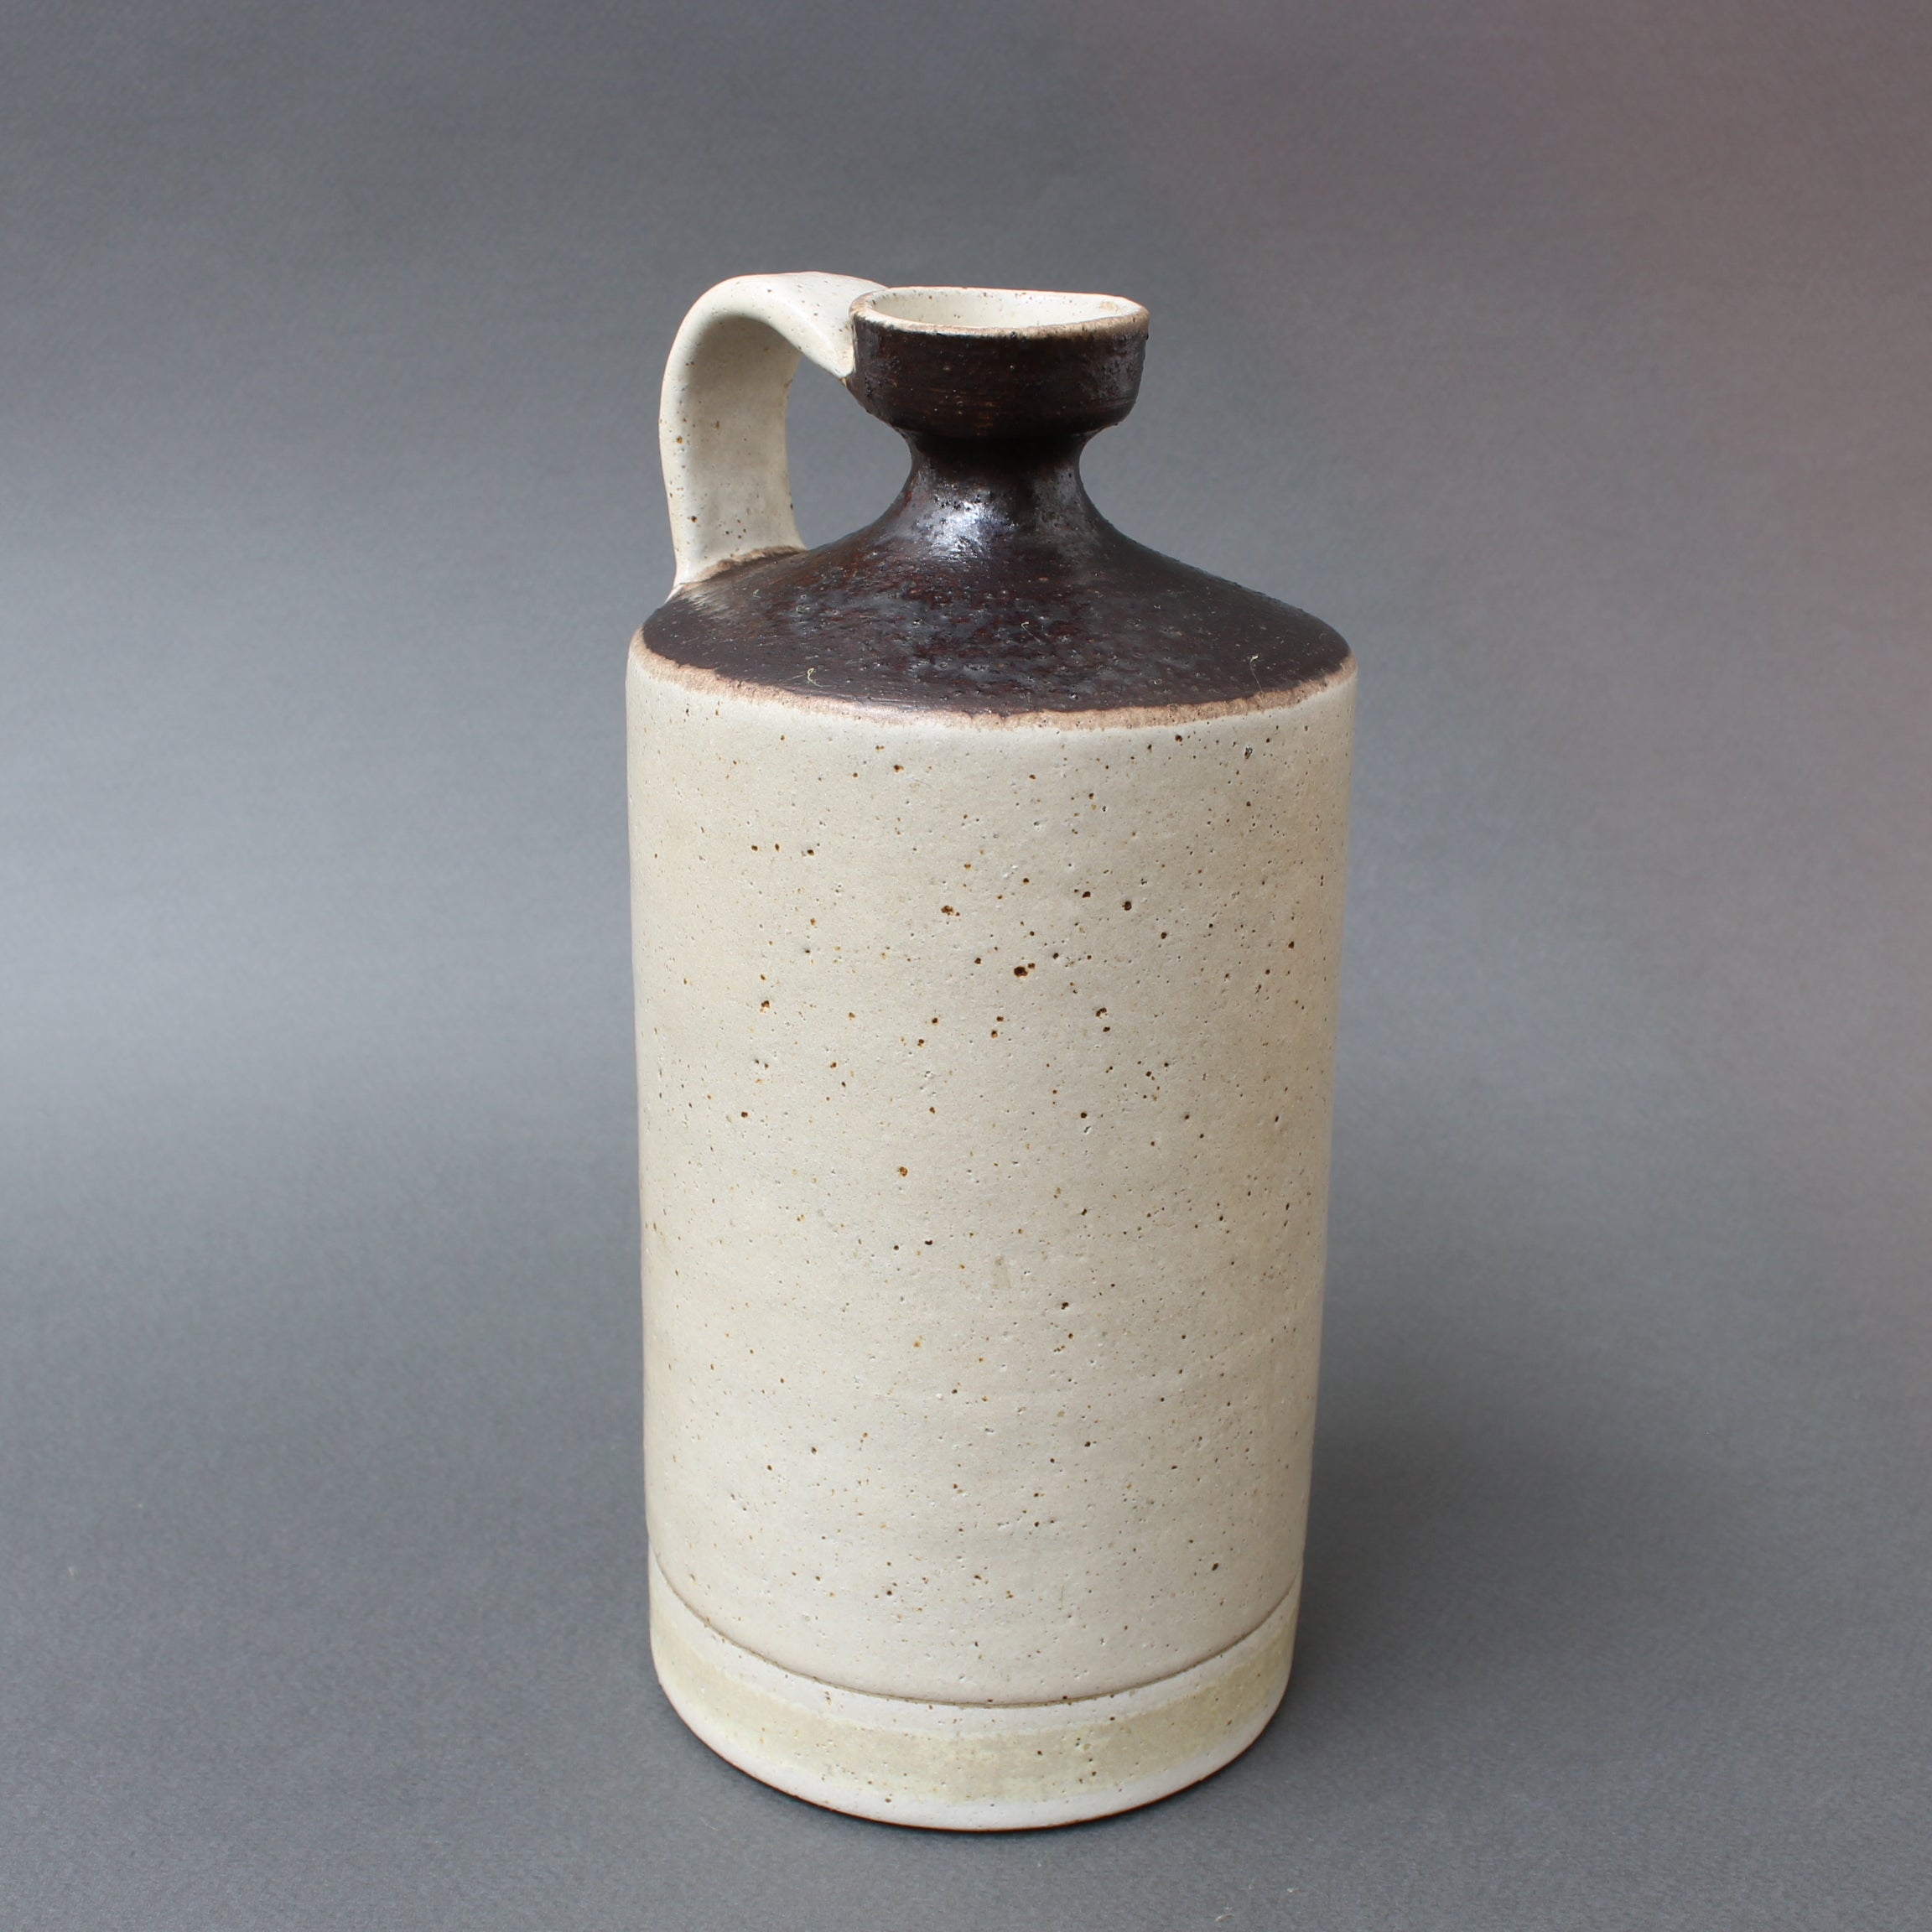 Italian Mid-Century Decorative Ceramic Jug by Bruno Gambone (circa 1970s)